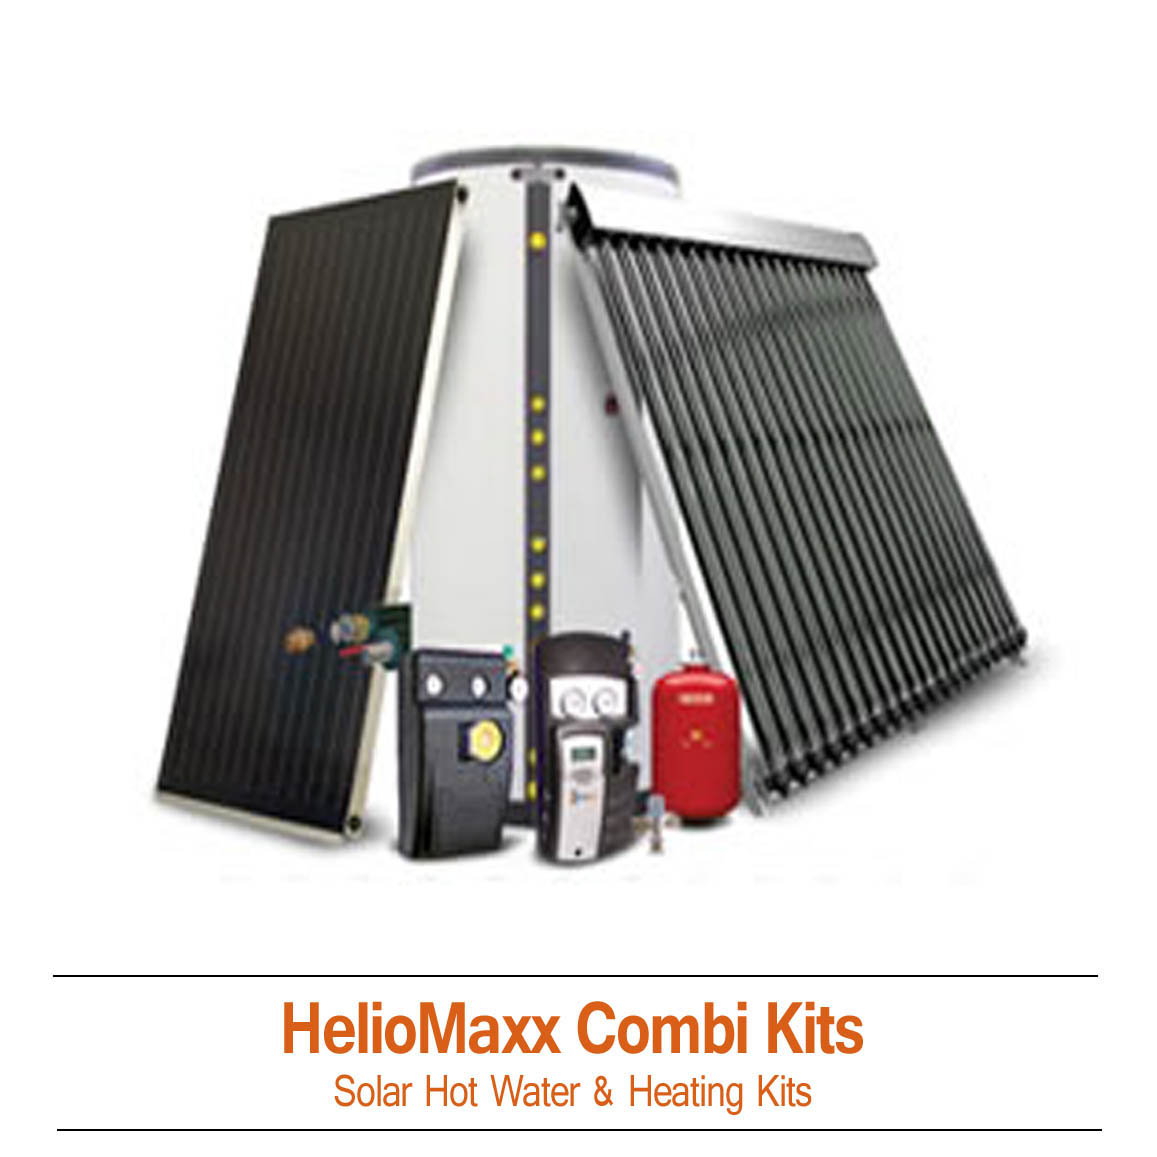 Combi Solar Hot Water & Radiant Heating Kits